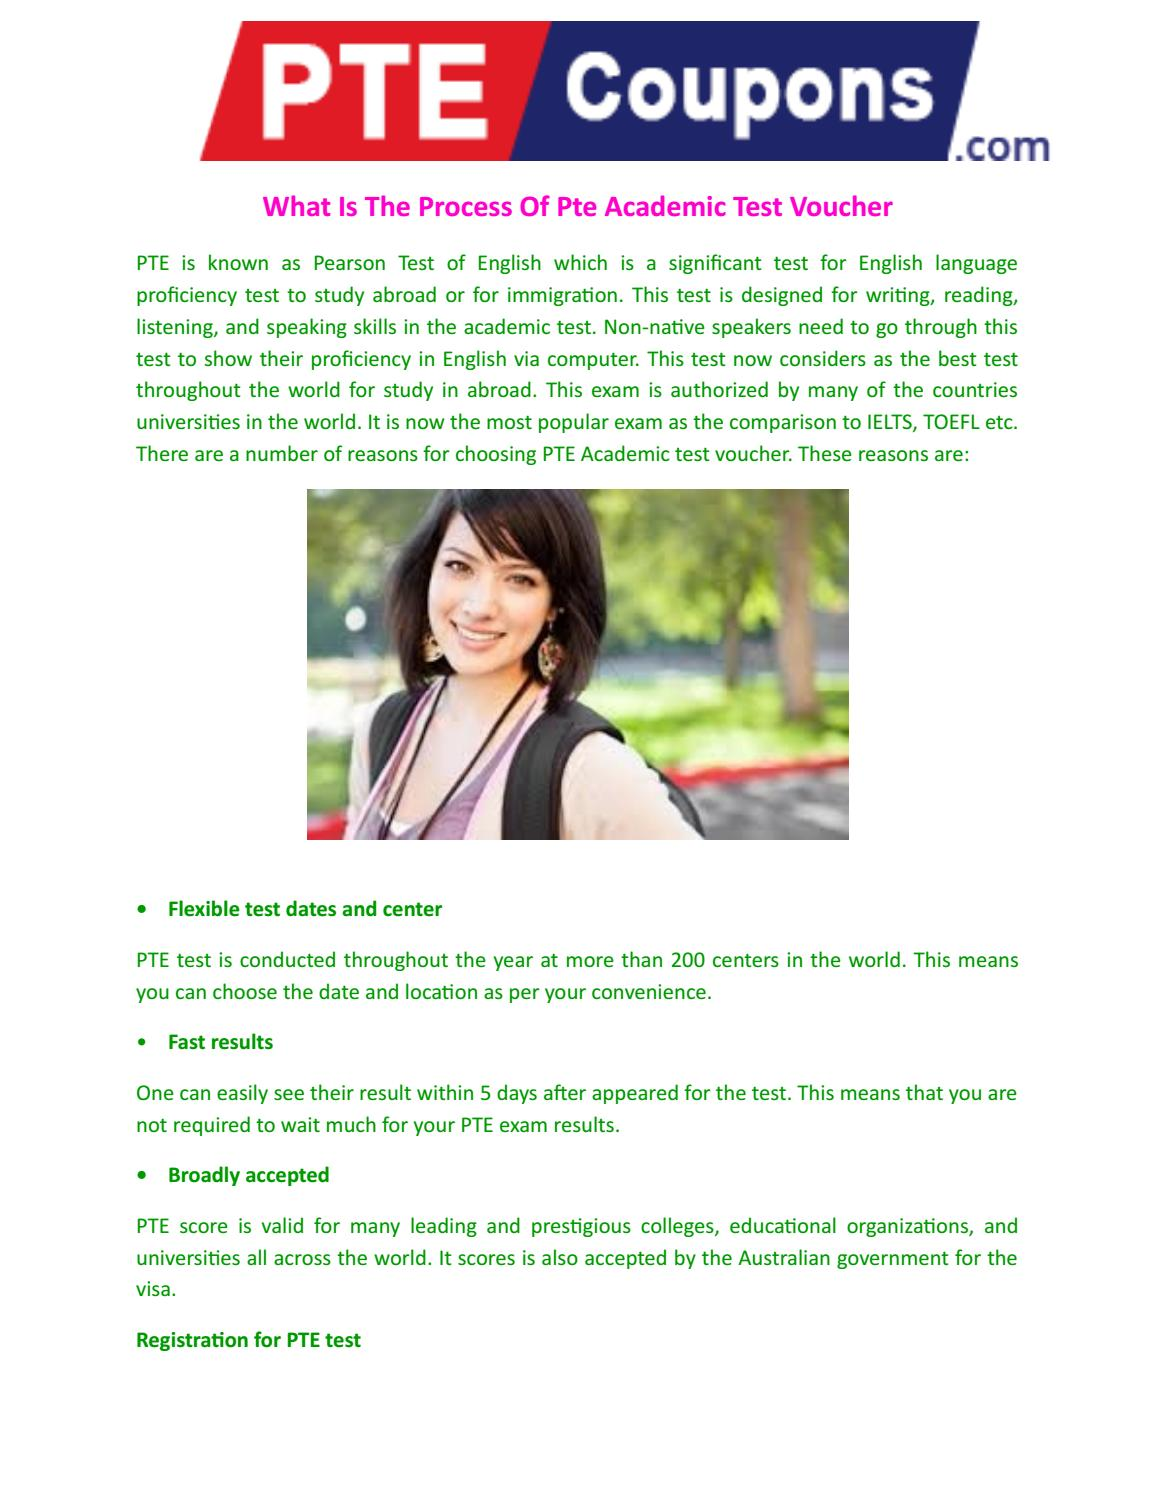 What is the process of pte academic test voucher by Pte